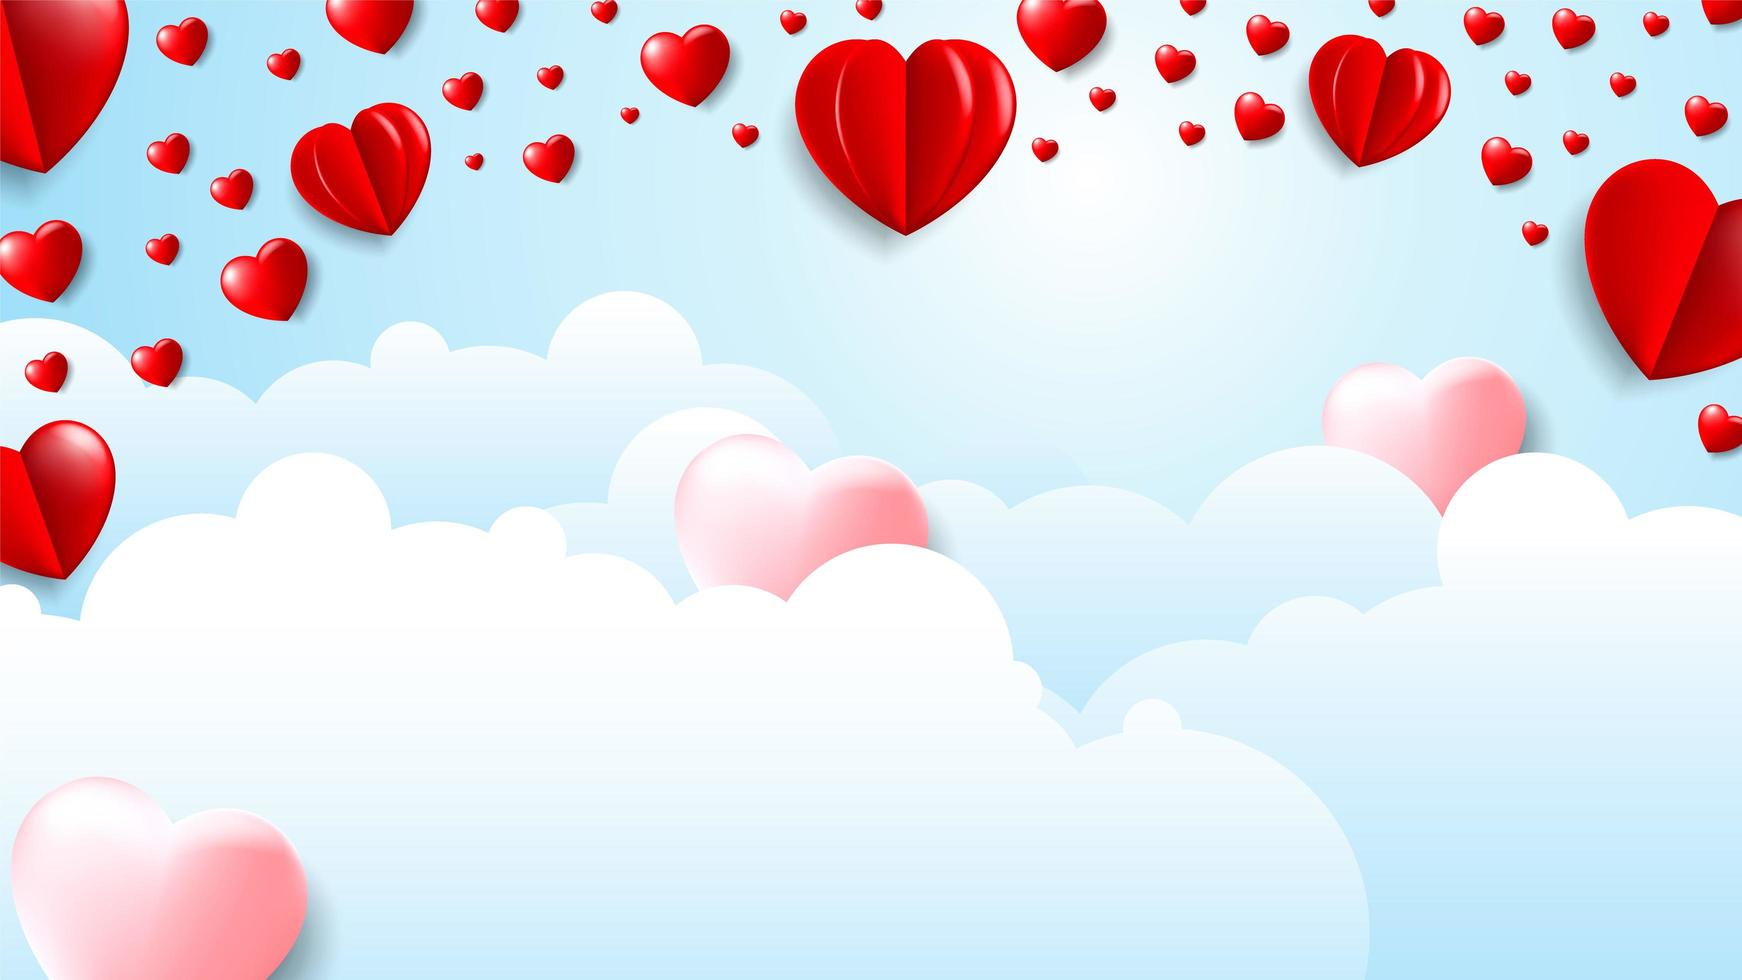 Valentine's Day Cloud background with Pink and Red 3D Hearts vector